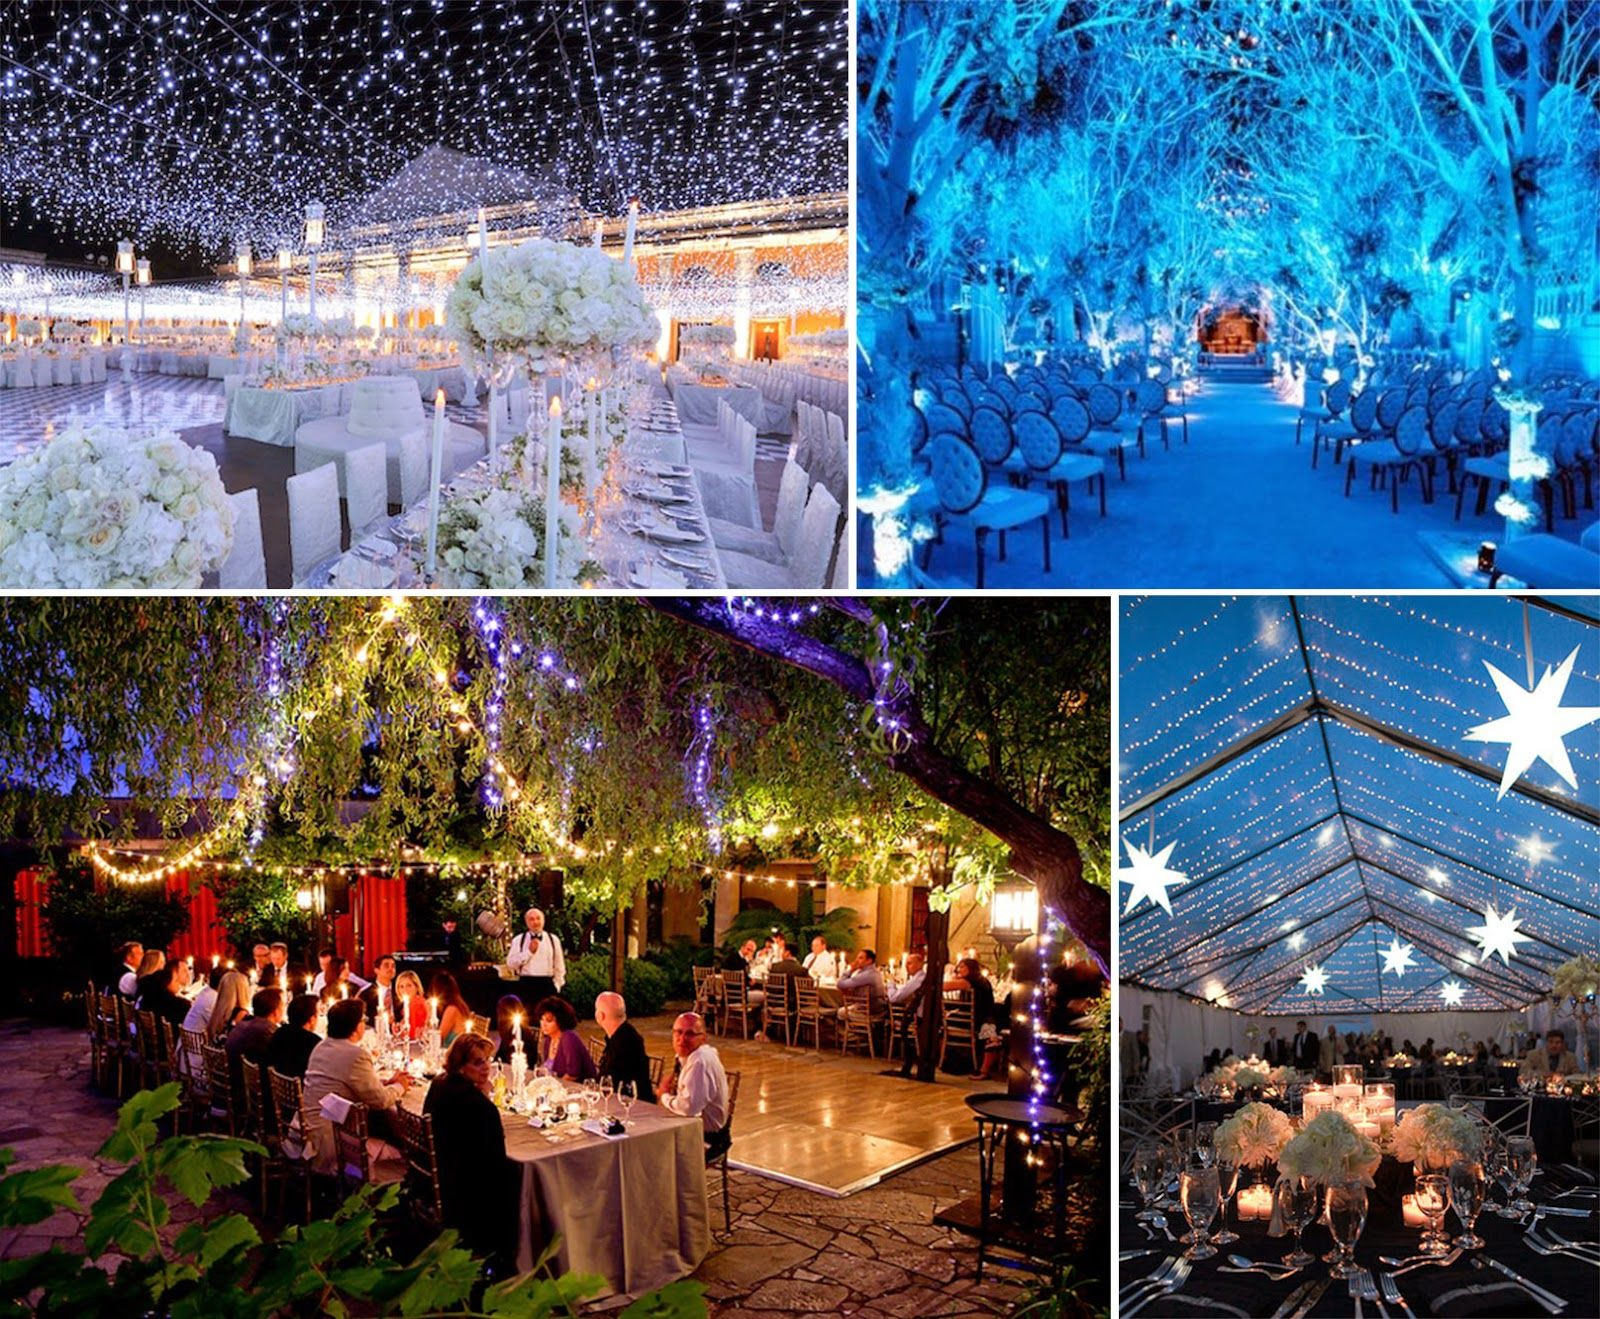 starry+theme+wedding+ideas+UK.jpg 1 600×1 319 pikseli